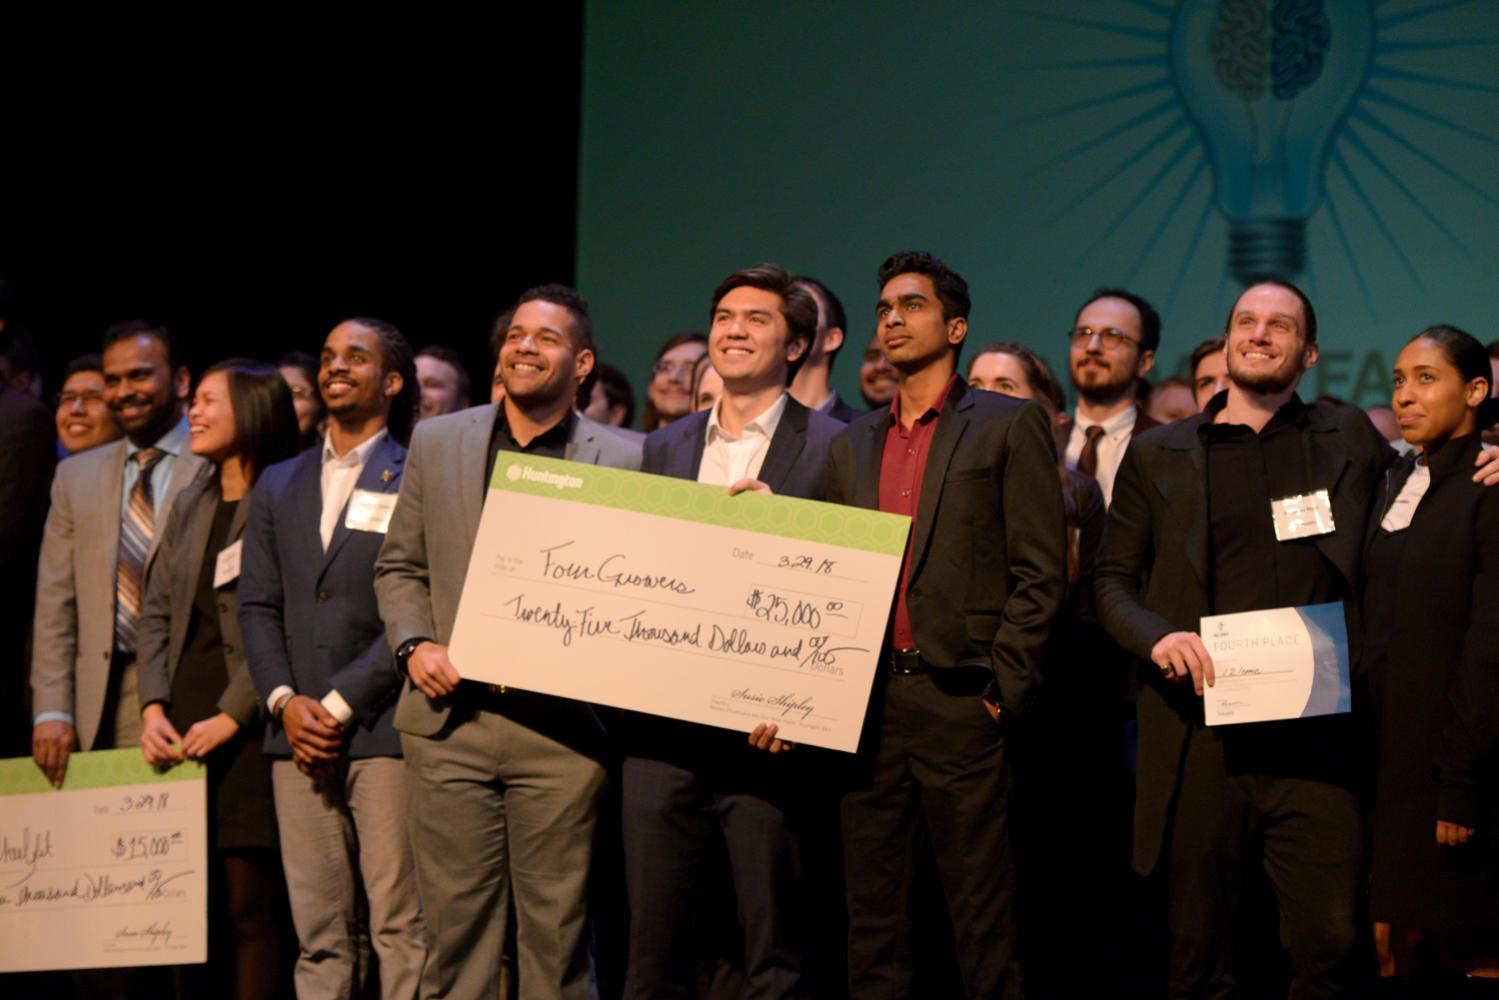 (From left) Daniel Garcia, Brandon Contino and Rahul Ramakrishnan of Four Growers accept first place at the Randall Family Big Idea Competition Celebration event Thursday afternoon. (Photo by Divyanka Bhatia | Staff Photographer)